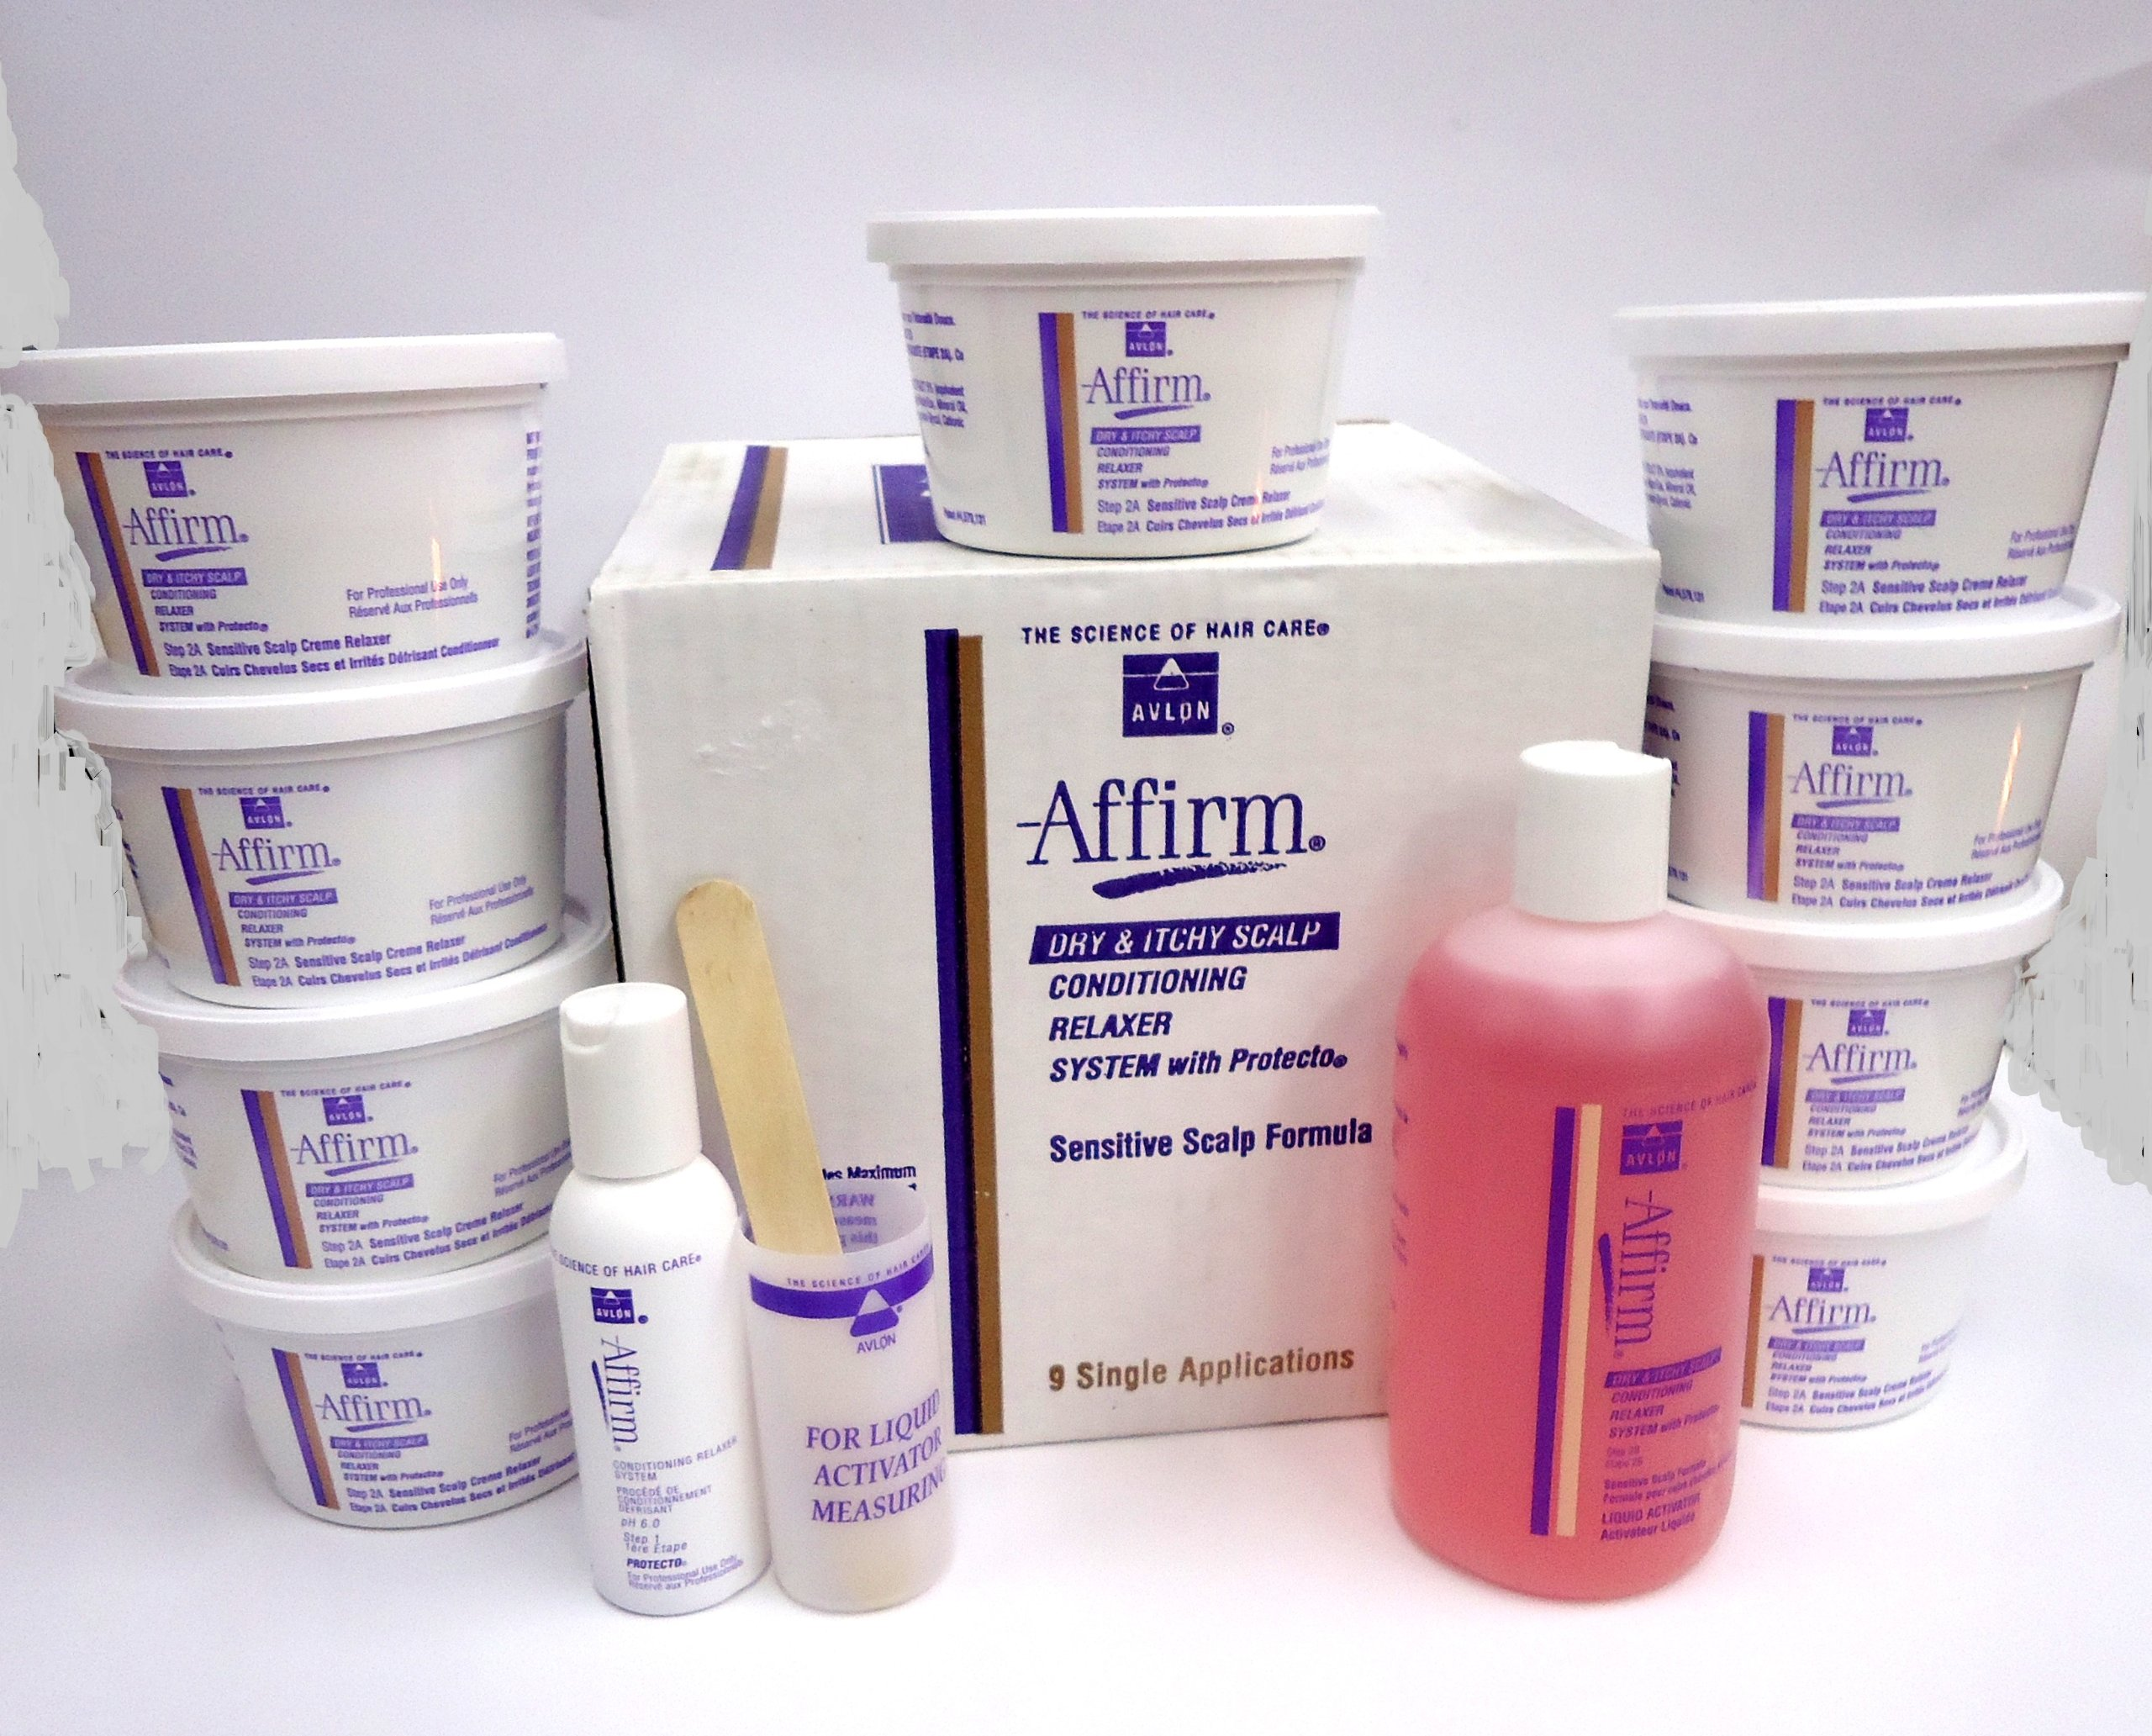 Avlon Affirm Dry & Itchy Scalp Conditioning Relaxer System - sensitive scalp formula - 9 single appl